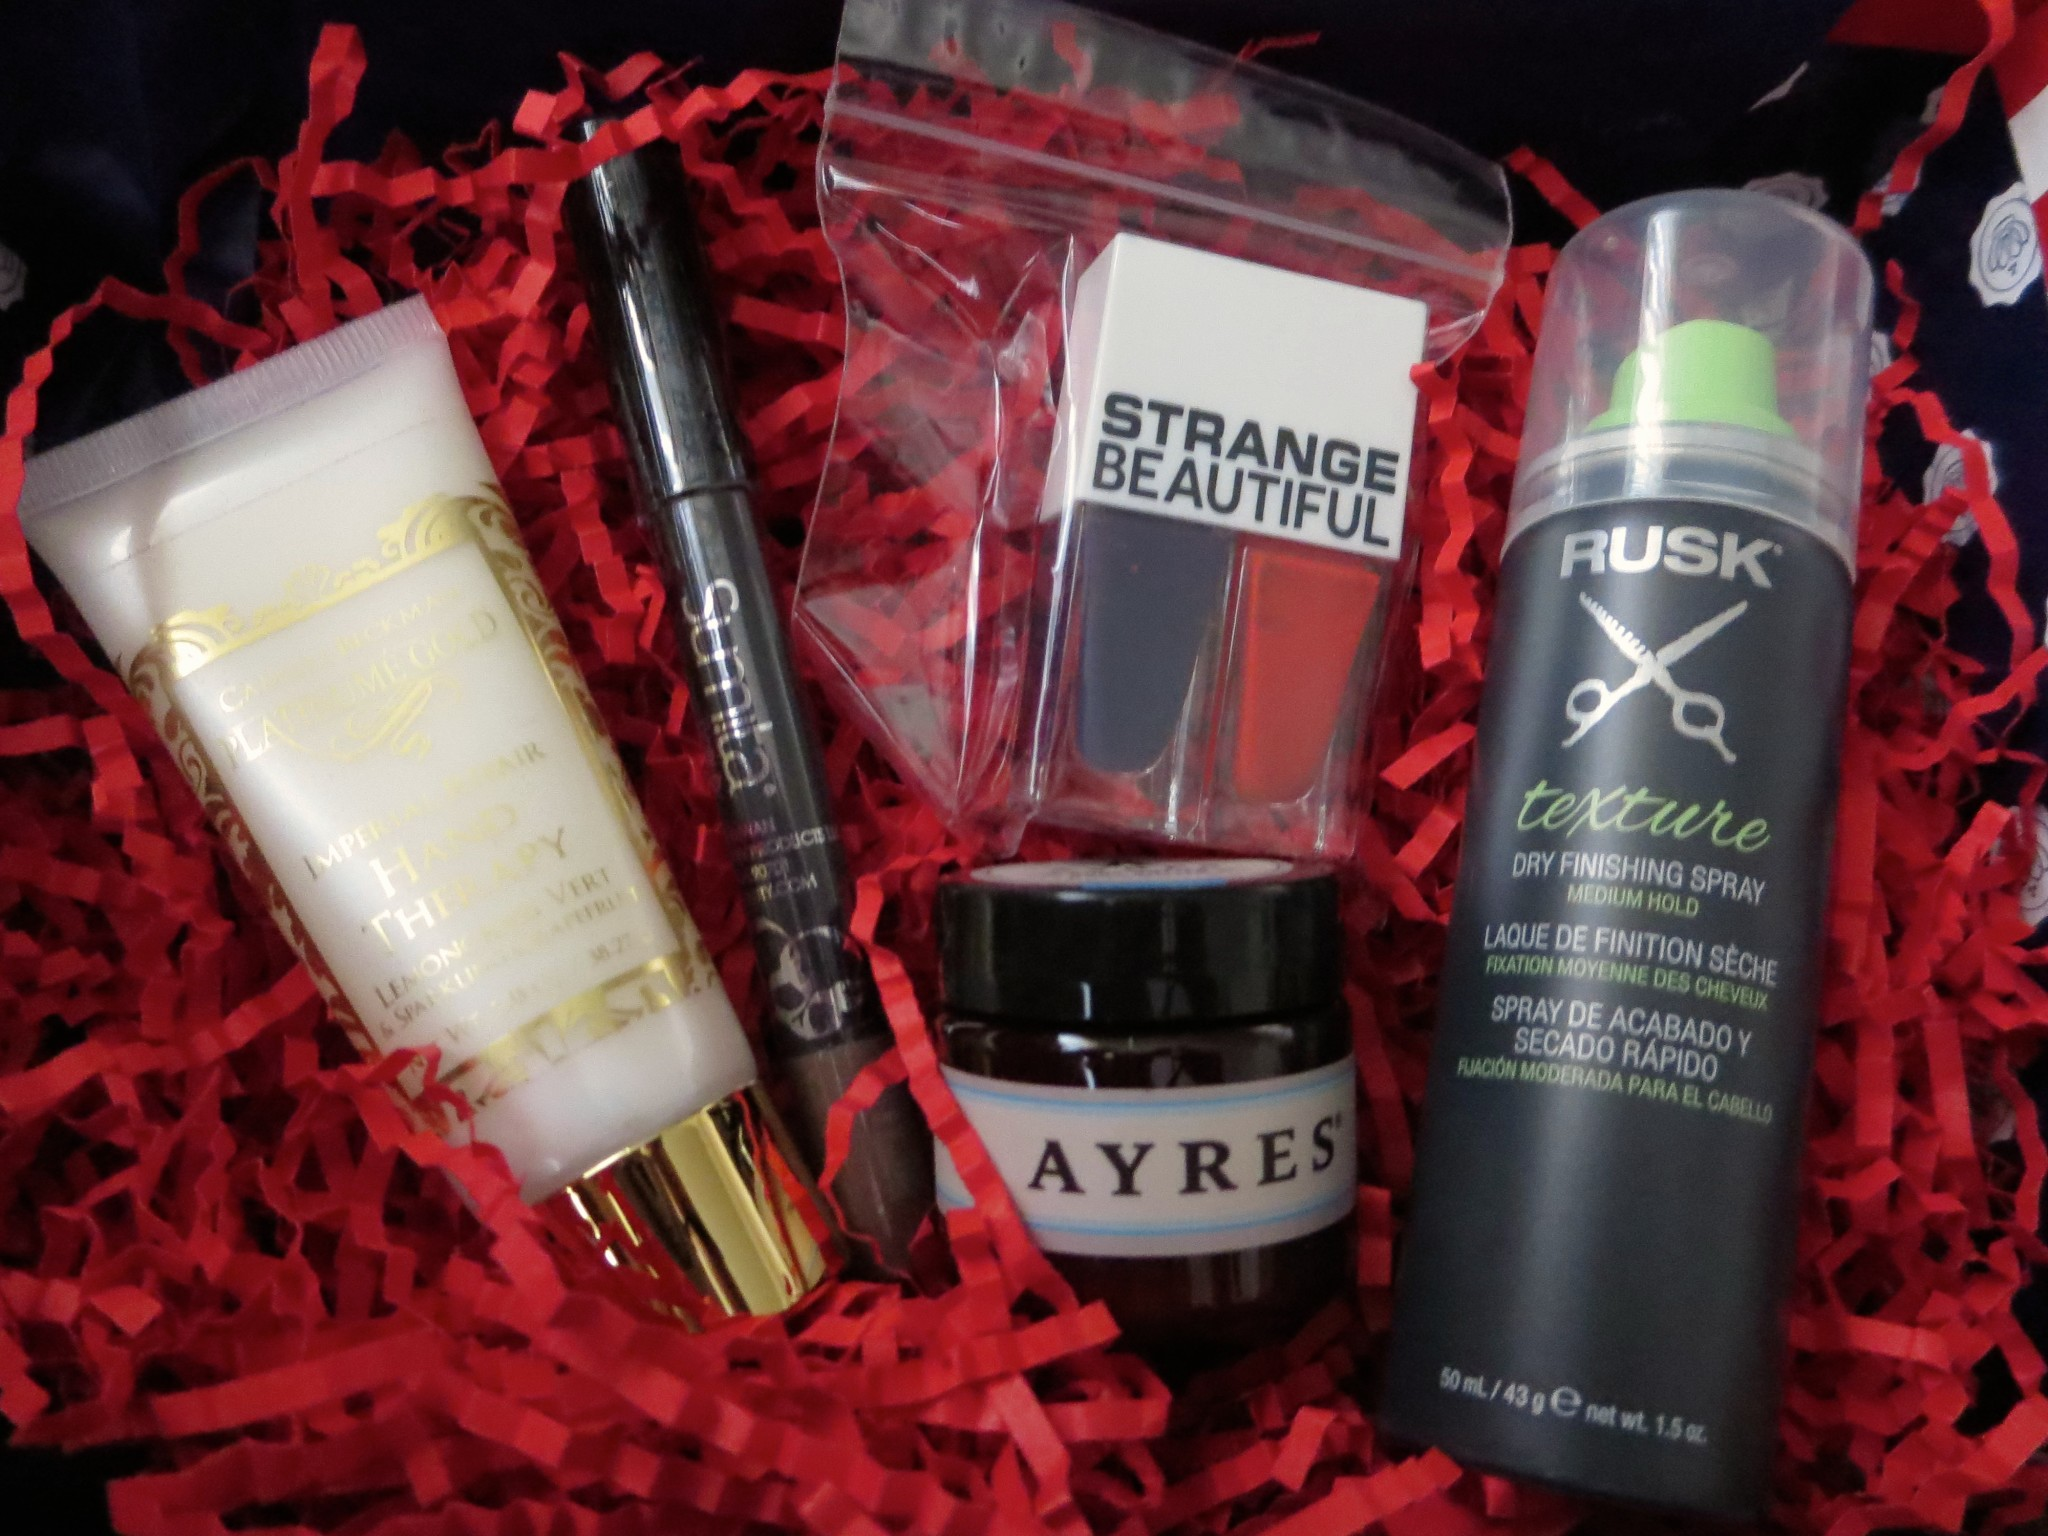 Contents of Stars and Stripes of GLOSSYBOX